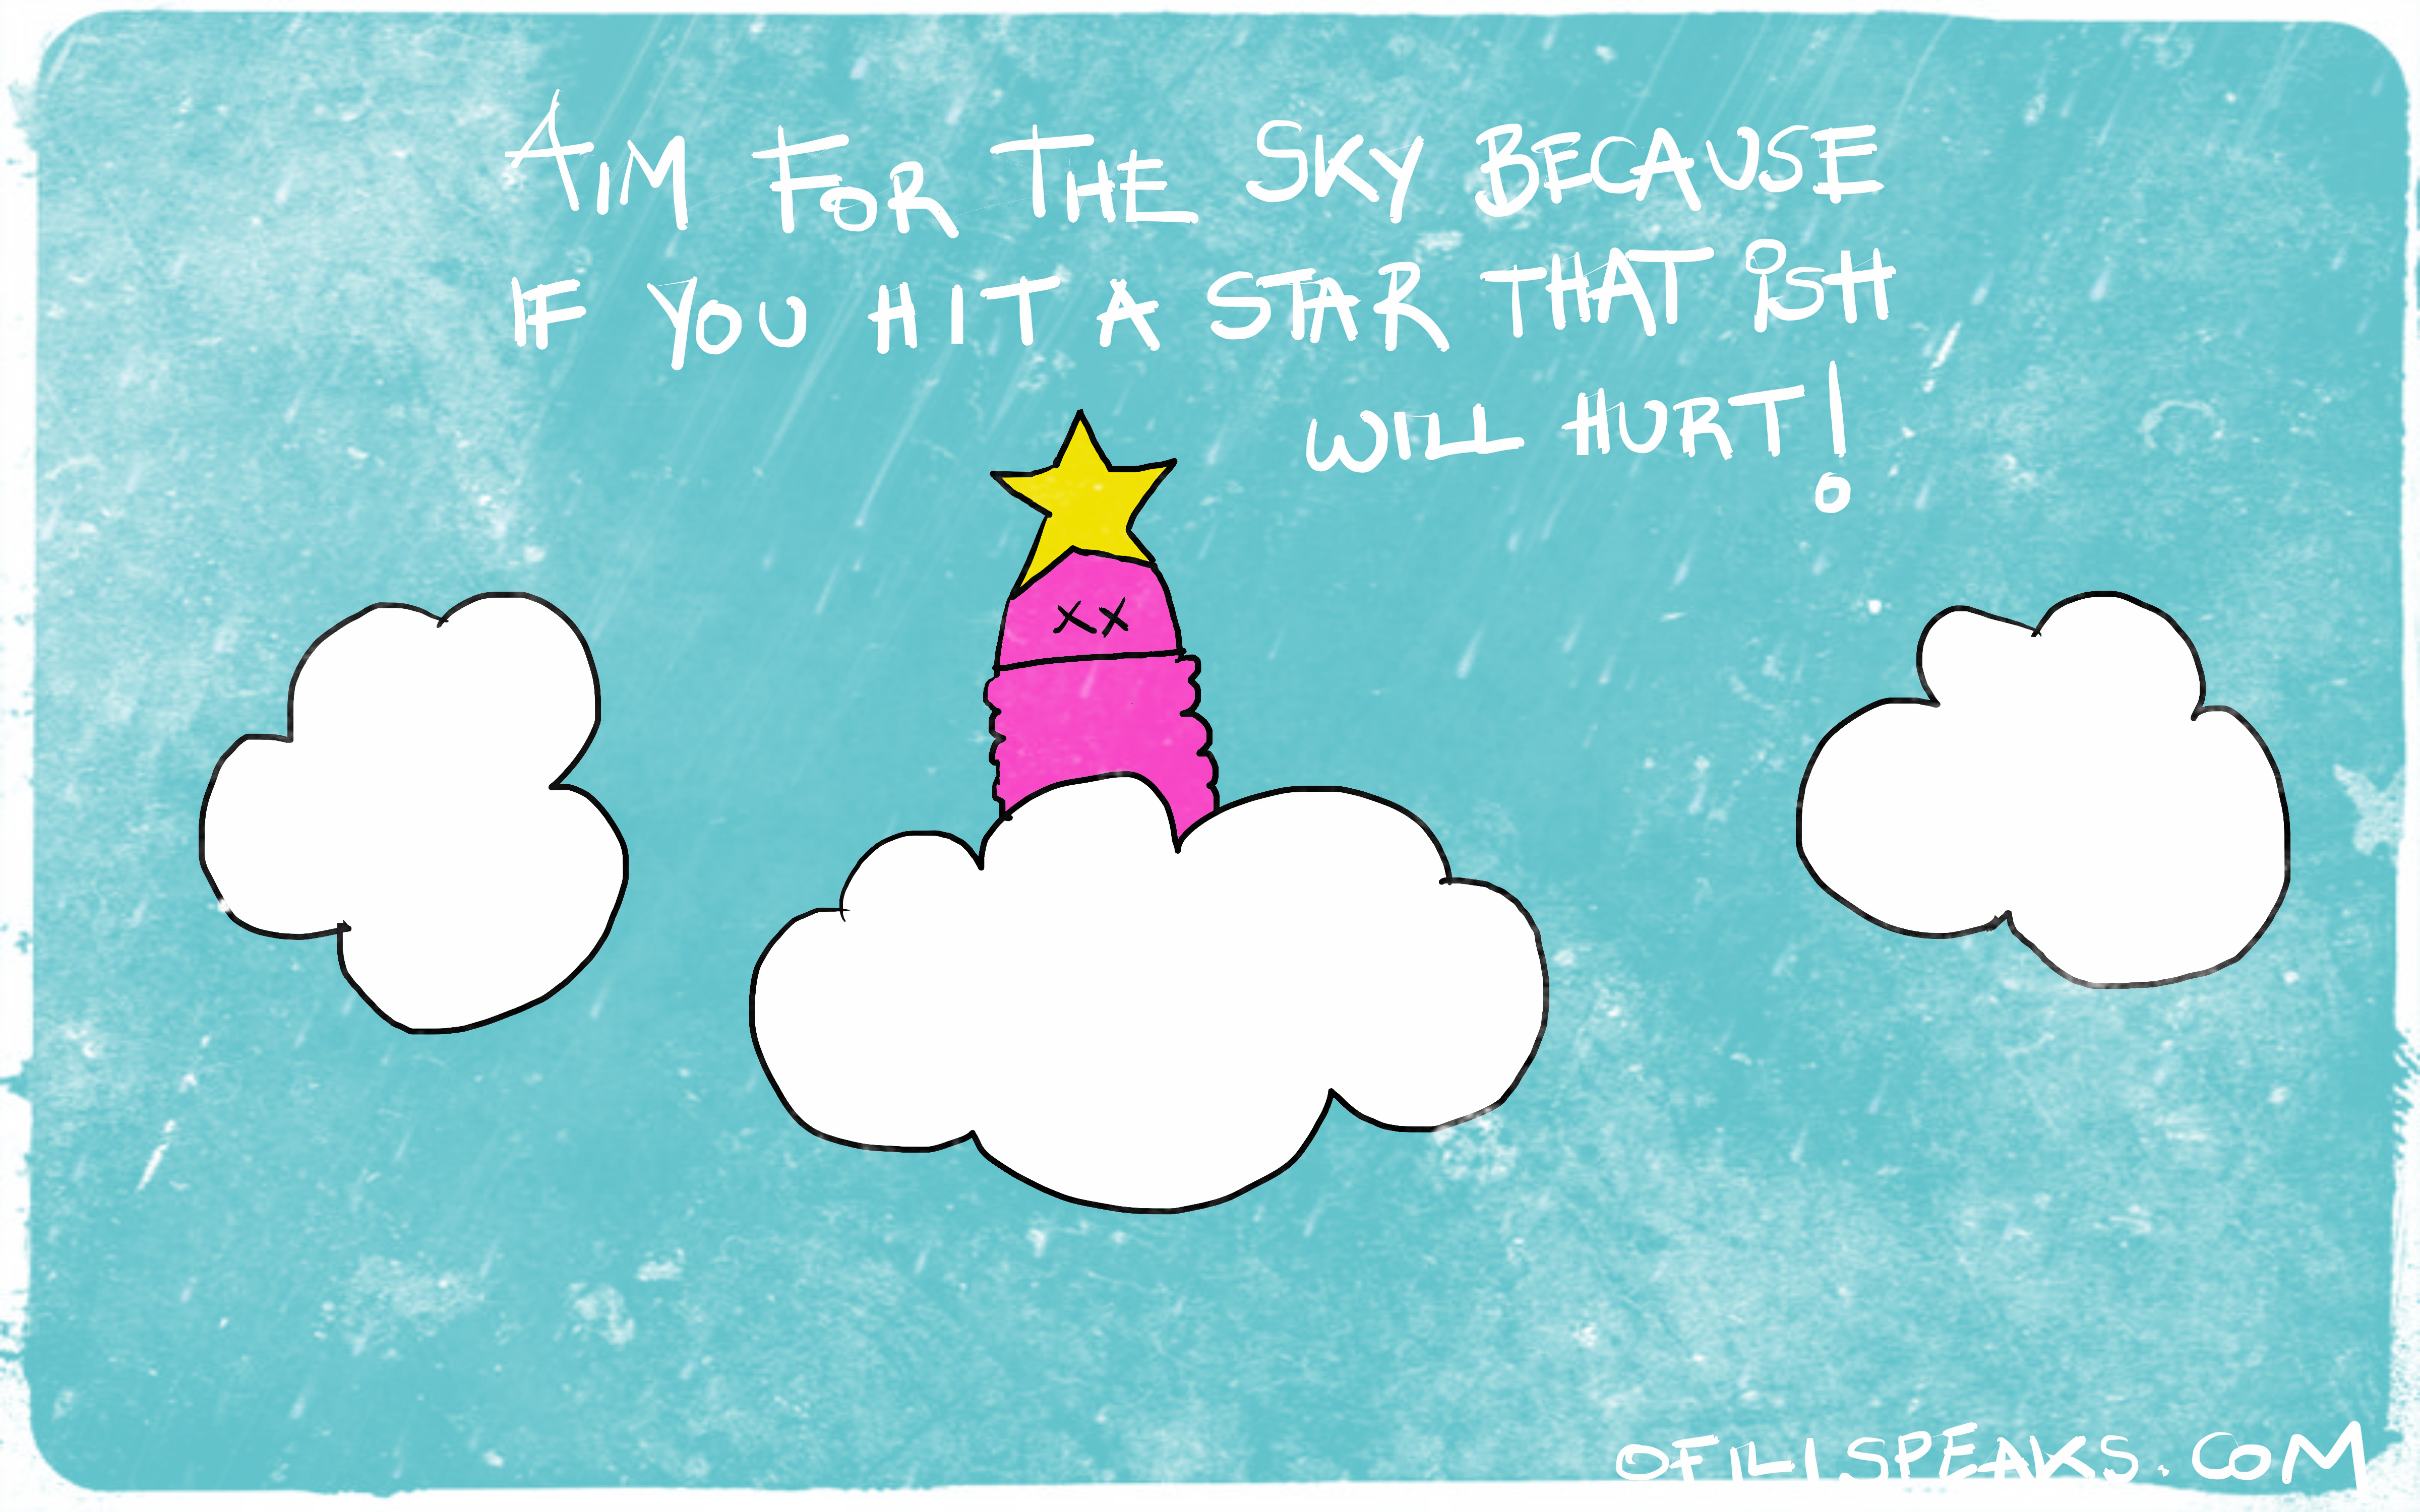 Aim For The Sky Because If You Hit A Star That Ish Will Hurt